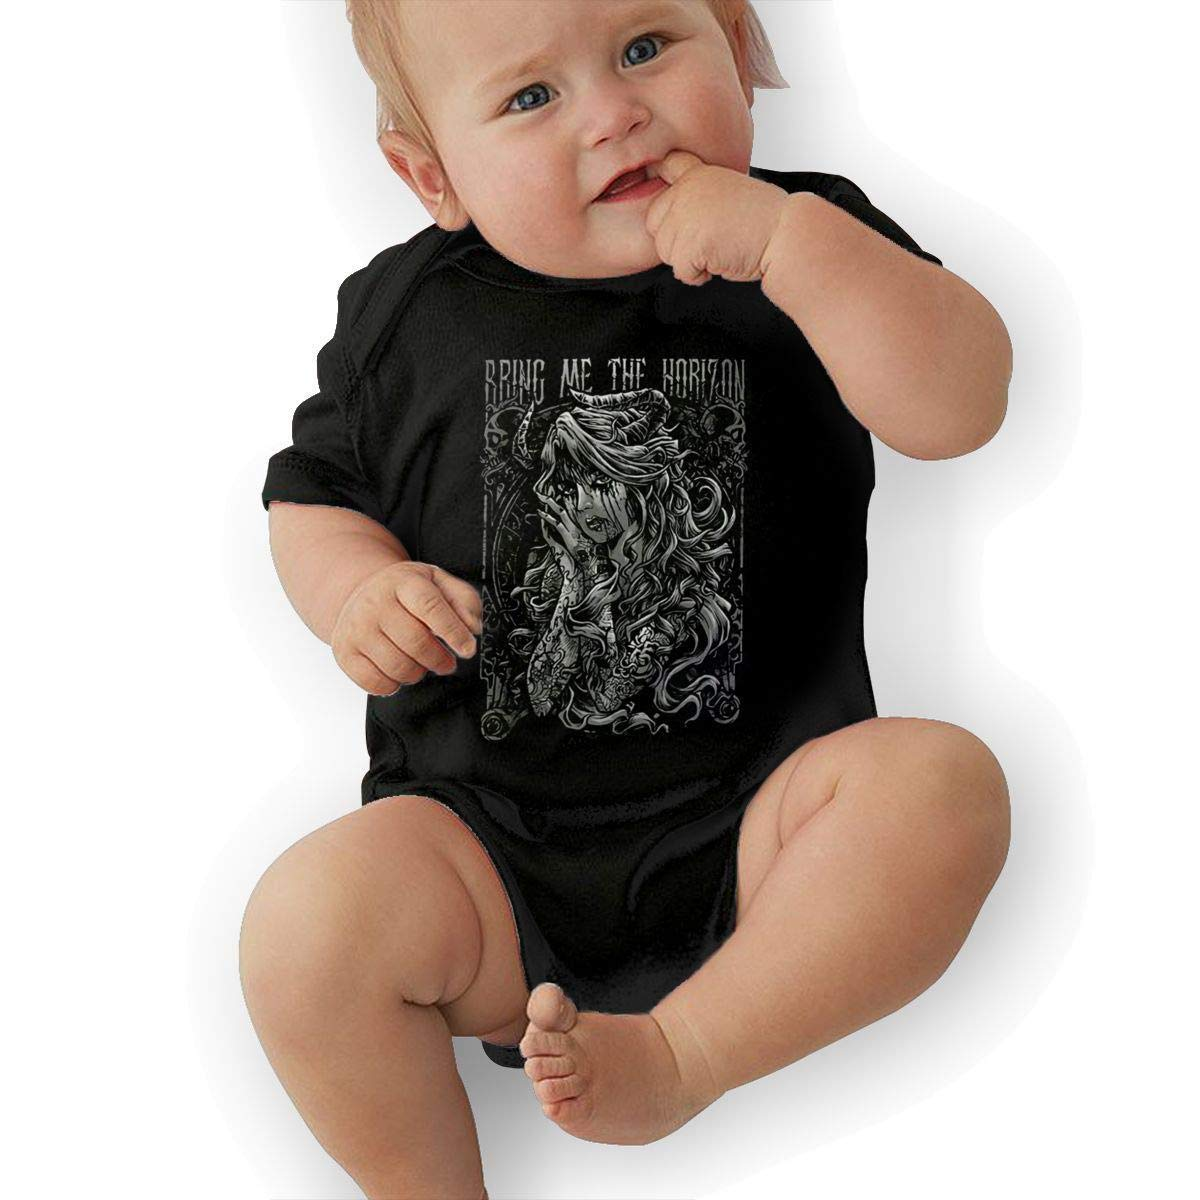 Baby Bring Me The Horizon Reach for The Sky Adorable Soft Music Band Jersey Baby Romper,Black,6M